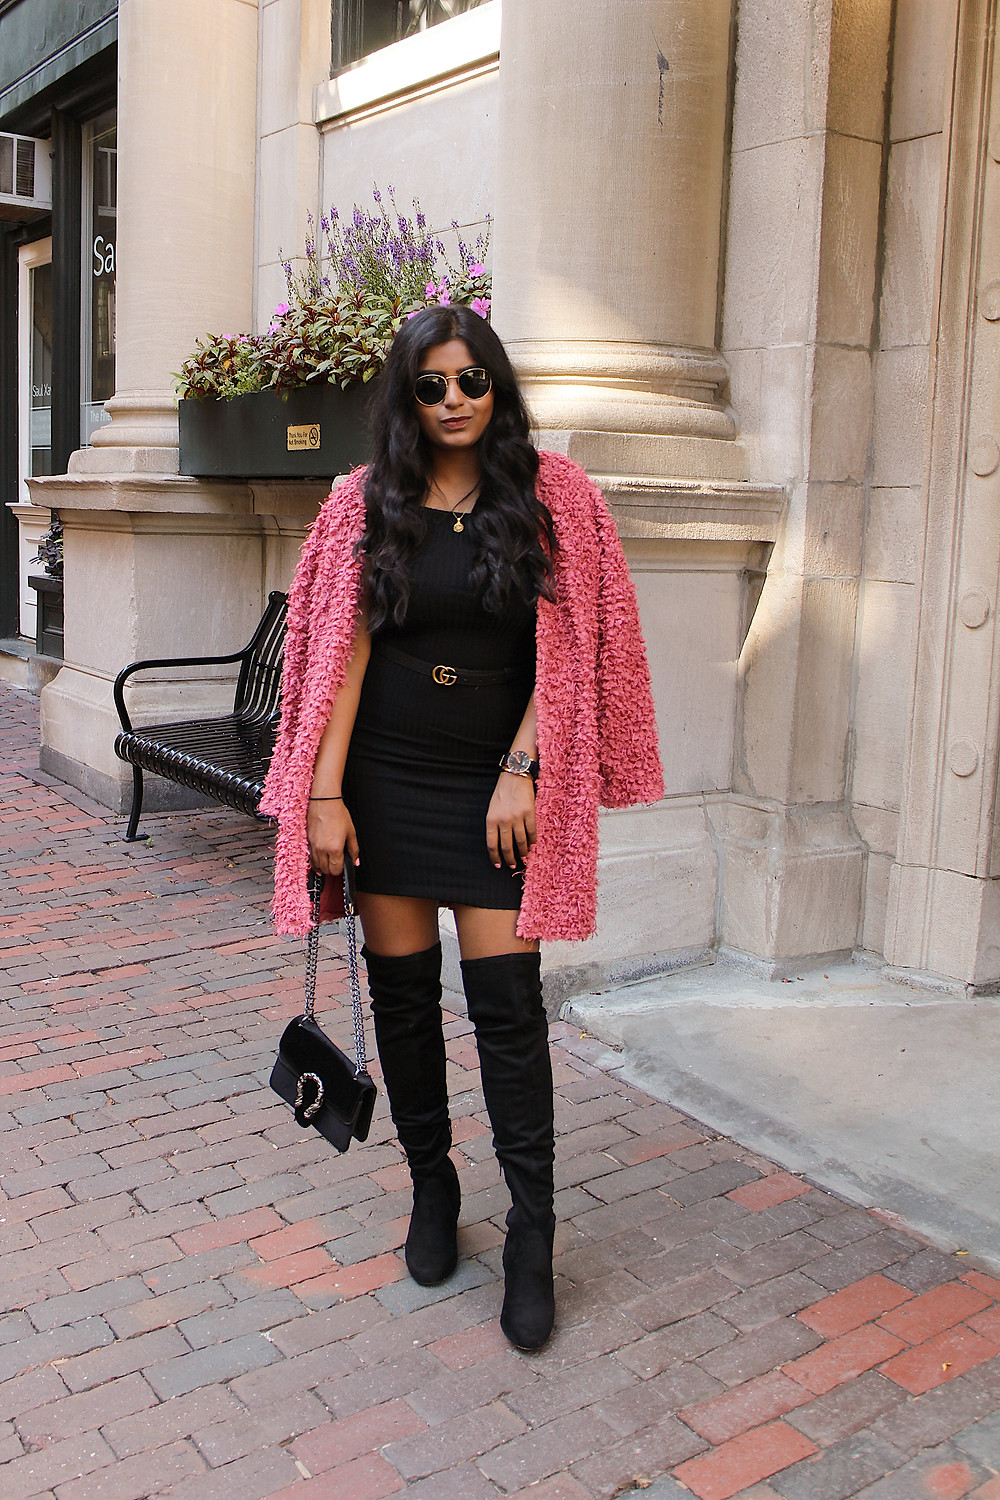 TEXTURED COZY CARDIGAN FOR FALL